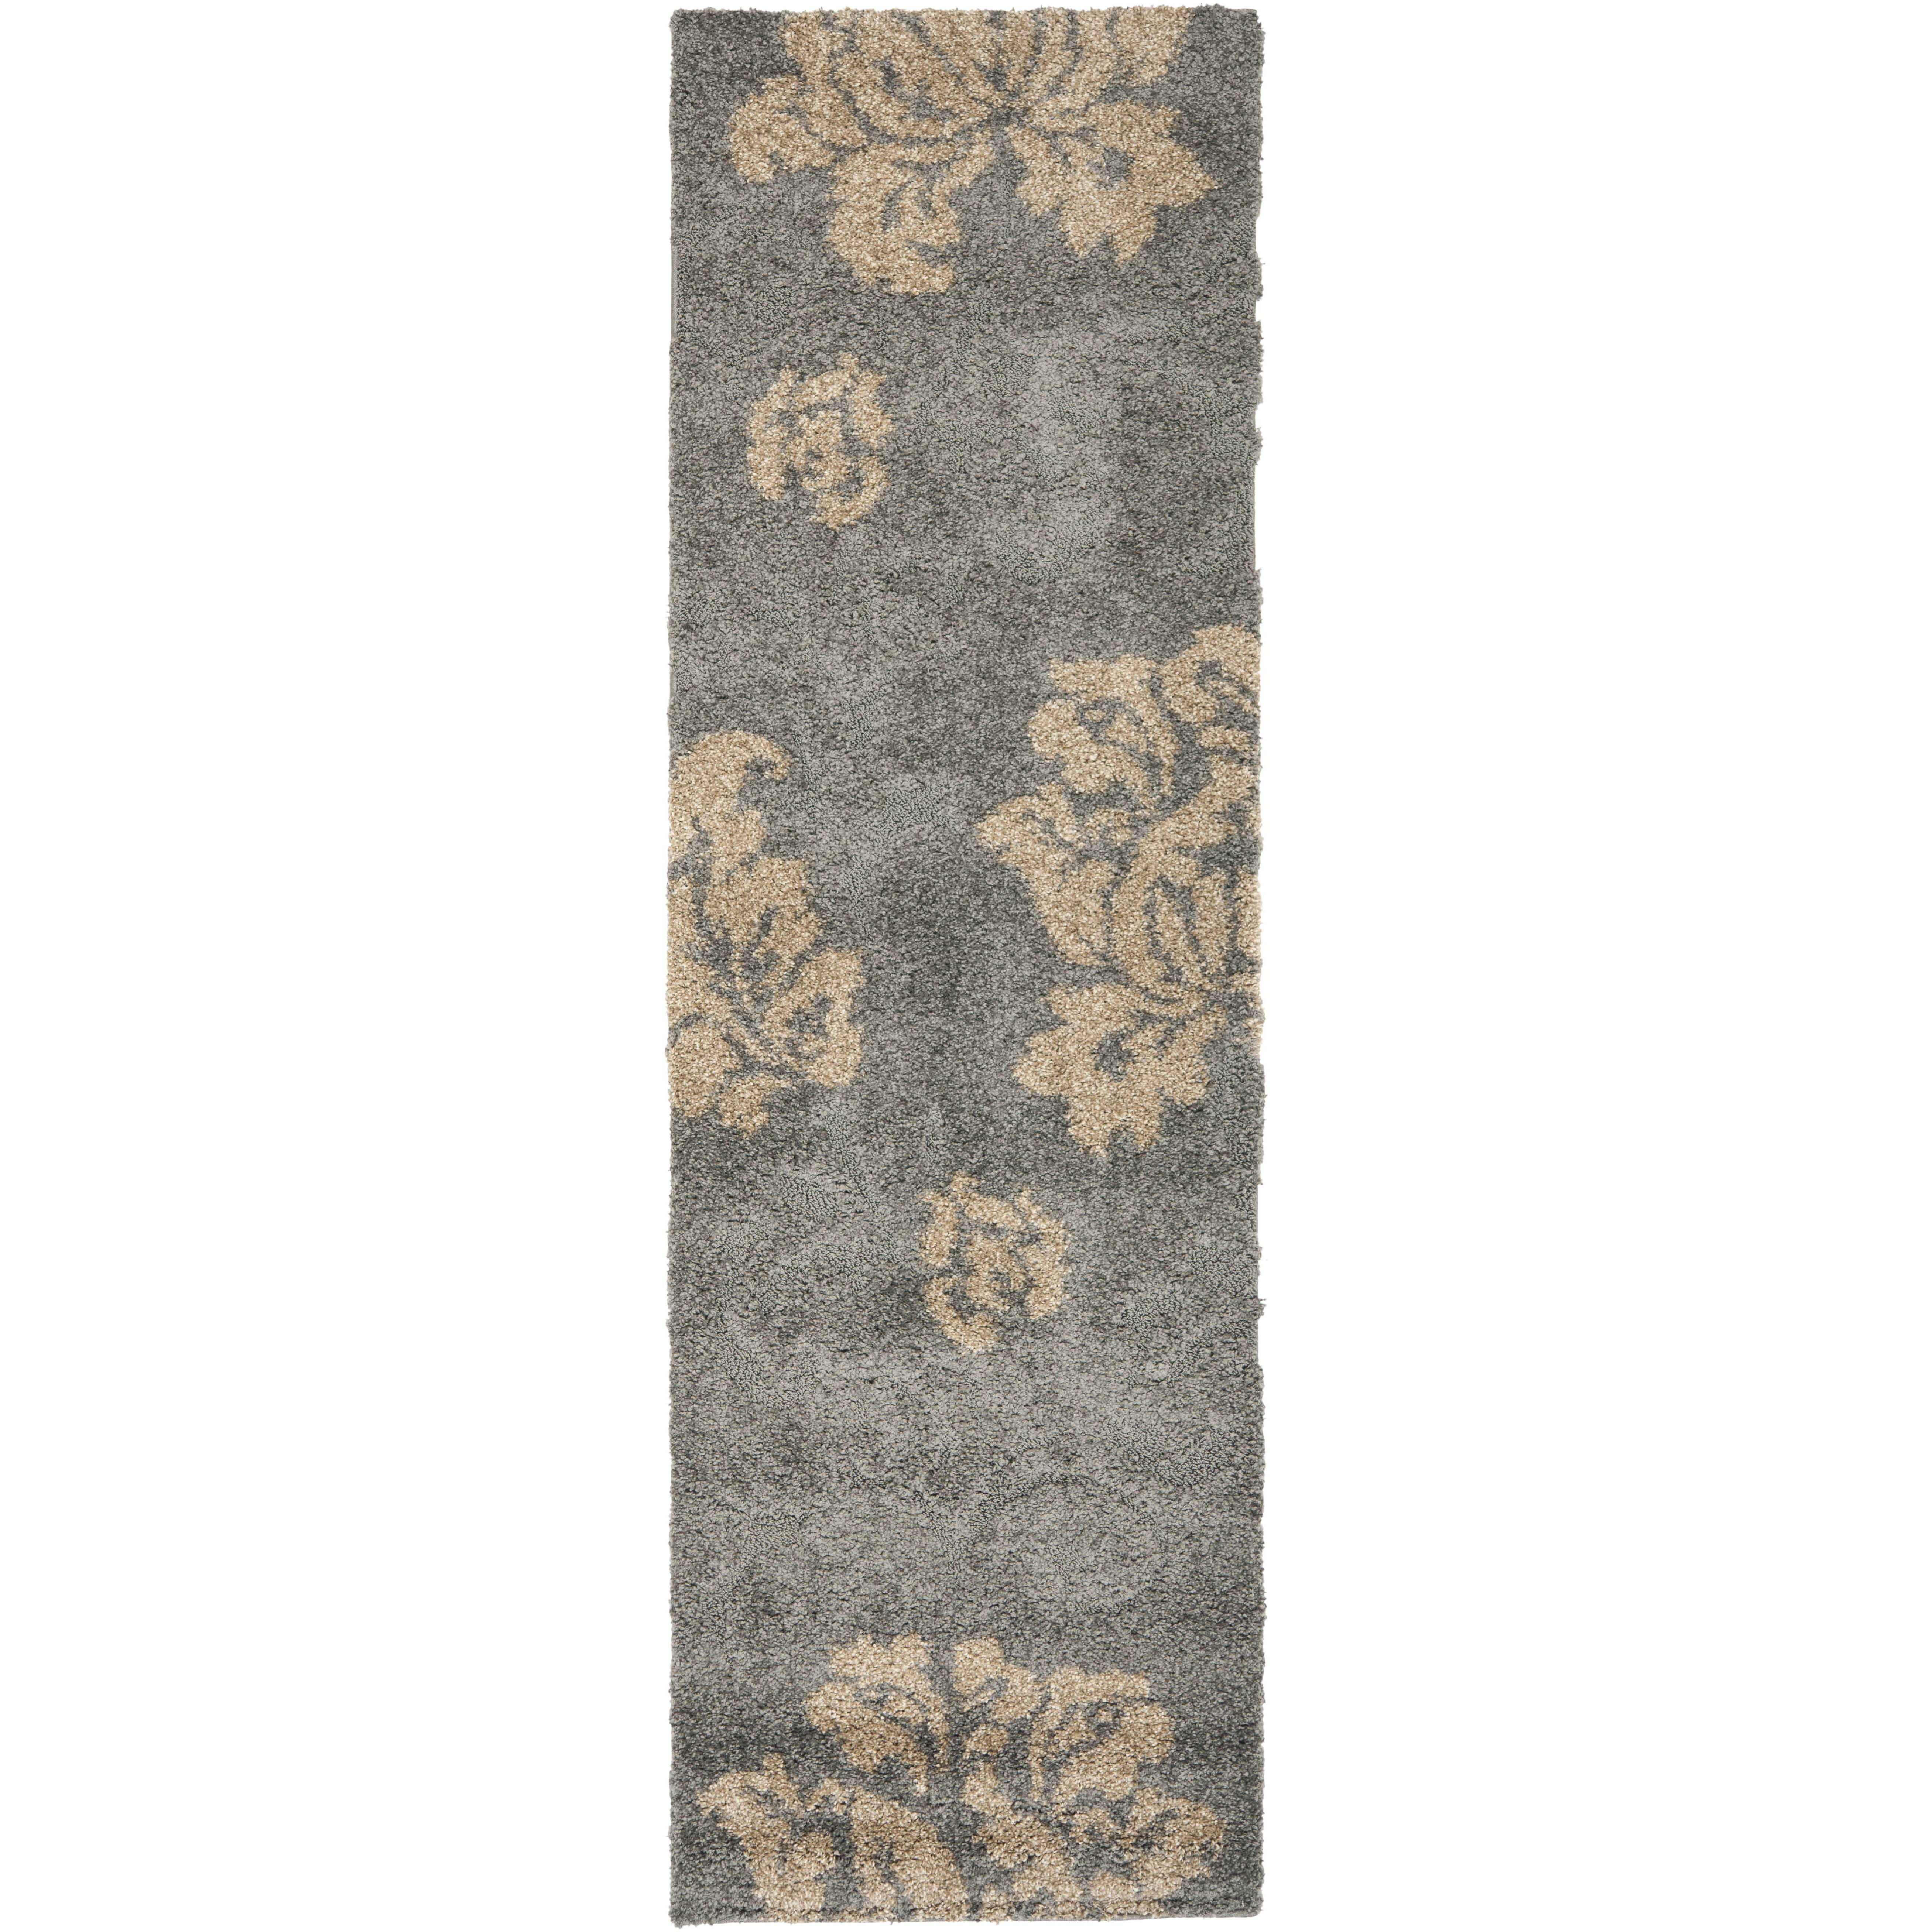 House Of Hampton Reubens Shag Grey Beige Area Rug